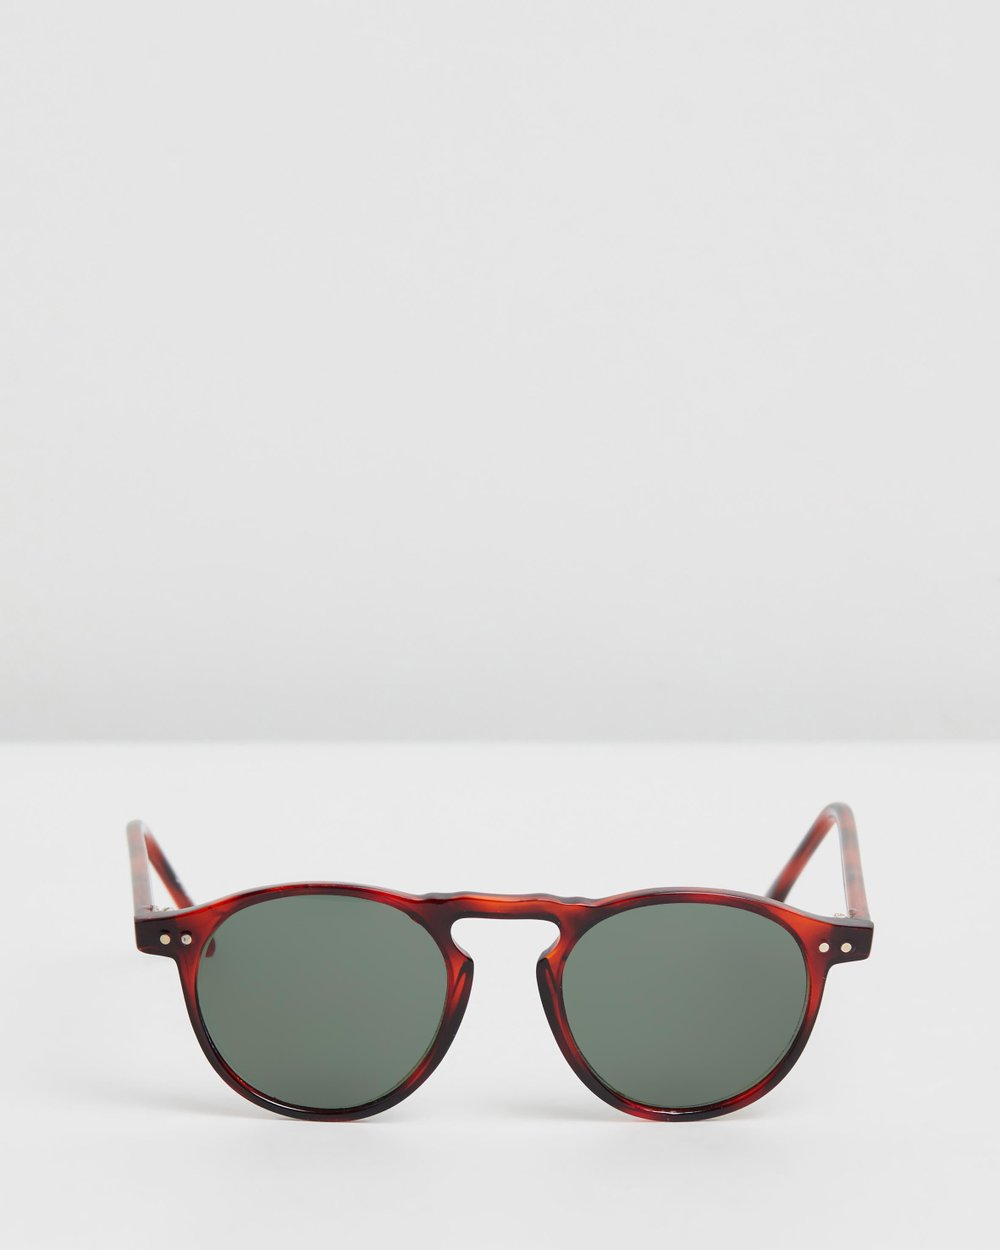 4f14199eb65 Berry by Hindsight Vintage Eyewear Online